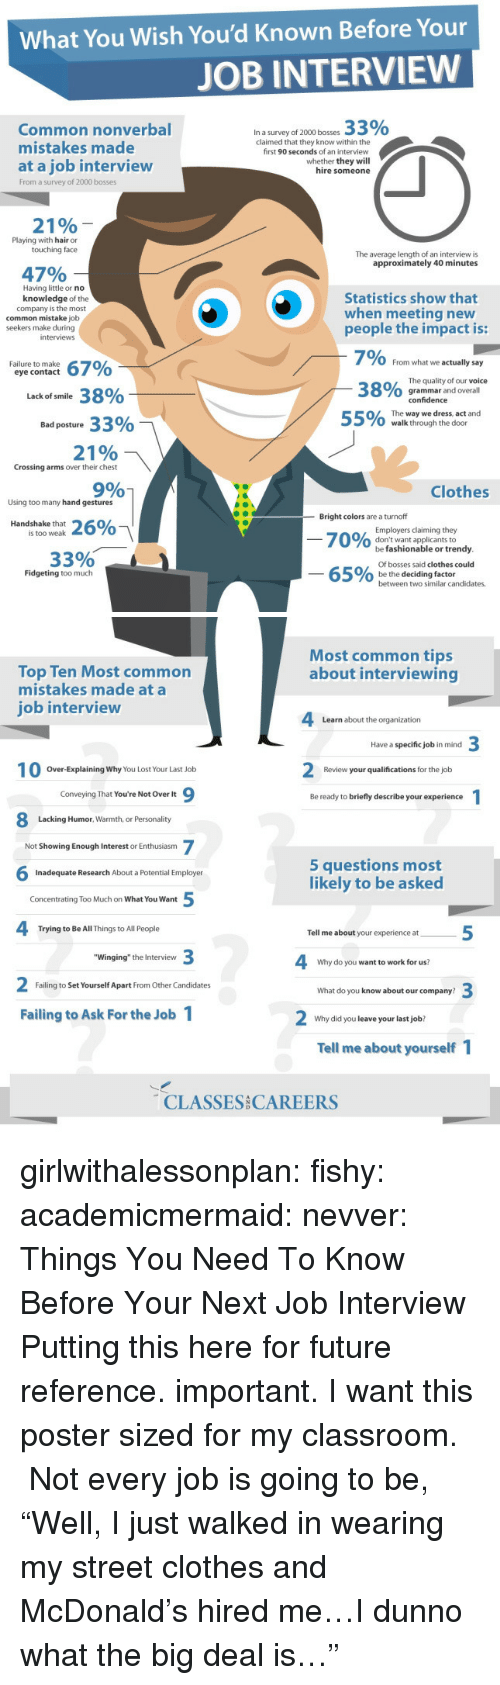 "playing with hair: What You Wish You'd Known Before Your  JOB INTERVIEW  33%  Common nonverbal  mistakes made  at a job interview  In a survey of 2000 bosses  claimed that they know within the  first 90 seconds of an interview  whether they will  hire someone  From a survey of 2000 bosses  21%  Playing with hair or  touching face  The average length of an interview is  approximately 40 minutes  47%  Having little or no  knowledge of the  company is the most  Statistics show that  when meeting new  common mistake job  seekers make during  people the impact is:  interviews  7% From what we actually say  O grammar and overall  O/ The way we dress, act and  Failure to make  eye contact  The quality of our voice  38%  38%  Lack of smile  confidence  Bad posture 33%  0  walk through the door  21%  Crossing arms over their chest  9%  Clothes  Using too many hand gestures  -Bright colors are a turnoff  Handshake that  Employers claiming they  don't want applicants to  is too weak  7010%  o  33% -  be fashionable or trendy  Of bosses said clothes could  be the deciding factor  Fidgeting too much  o  between two similar candidates.   Most common tips  about interviewing  Top Ten Most common  mistakes made at a  ob interview  Learn about the organization  Have a specific job in mind  Over-Explaining Why You Lost Your Last Job  Review your qualifications for the job  Conveying That You're Not Over It  Be ready to briefly describe your experience  Lacking Humor, Warmth, or Personality  Not Showing Enough Interest or Enthusiasm  5 questions most  likely to be asked  Inadequate Research About a Potential Employer  Concentrating Too Much on What You Want  Trying to Be All Things to All People  Tell me about your experience at  ""Winging"" the Interview  Why do you want to work for us?  Failing to Set Yourself Apart From Other Candidates  What do you know about our company?  Failing to Ask For the Job 1  Why did you leave your last job?  Tell me about yourself  CLASSES CAREERS girlwithalessonplan:  fishy:  academicmermaid:  nevver:  Things You Need To Know Before Your Next Job Interview  Putting this here for future reference.  important.  I want this poster sized for my classroom.  Not every job is going to be, ""Well, I just walked in wearing my street clothes and McDonald's hired me…I dunno what the big deal is…"""